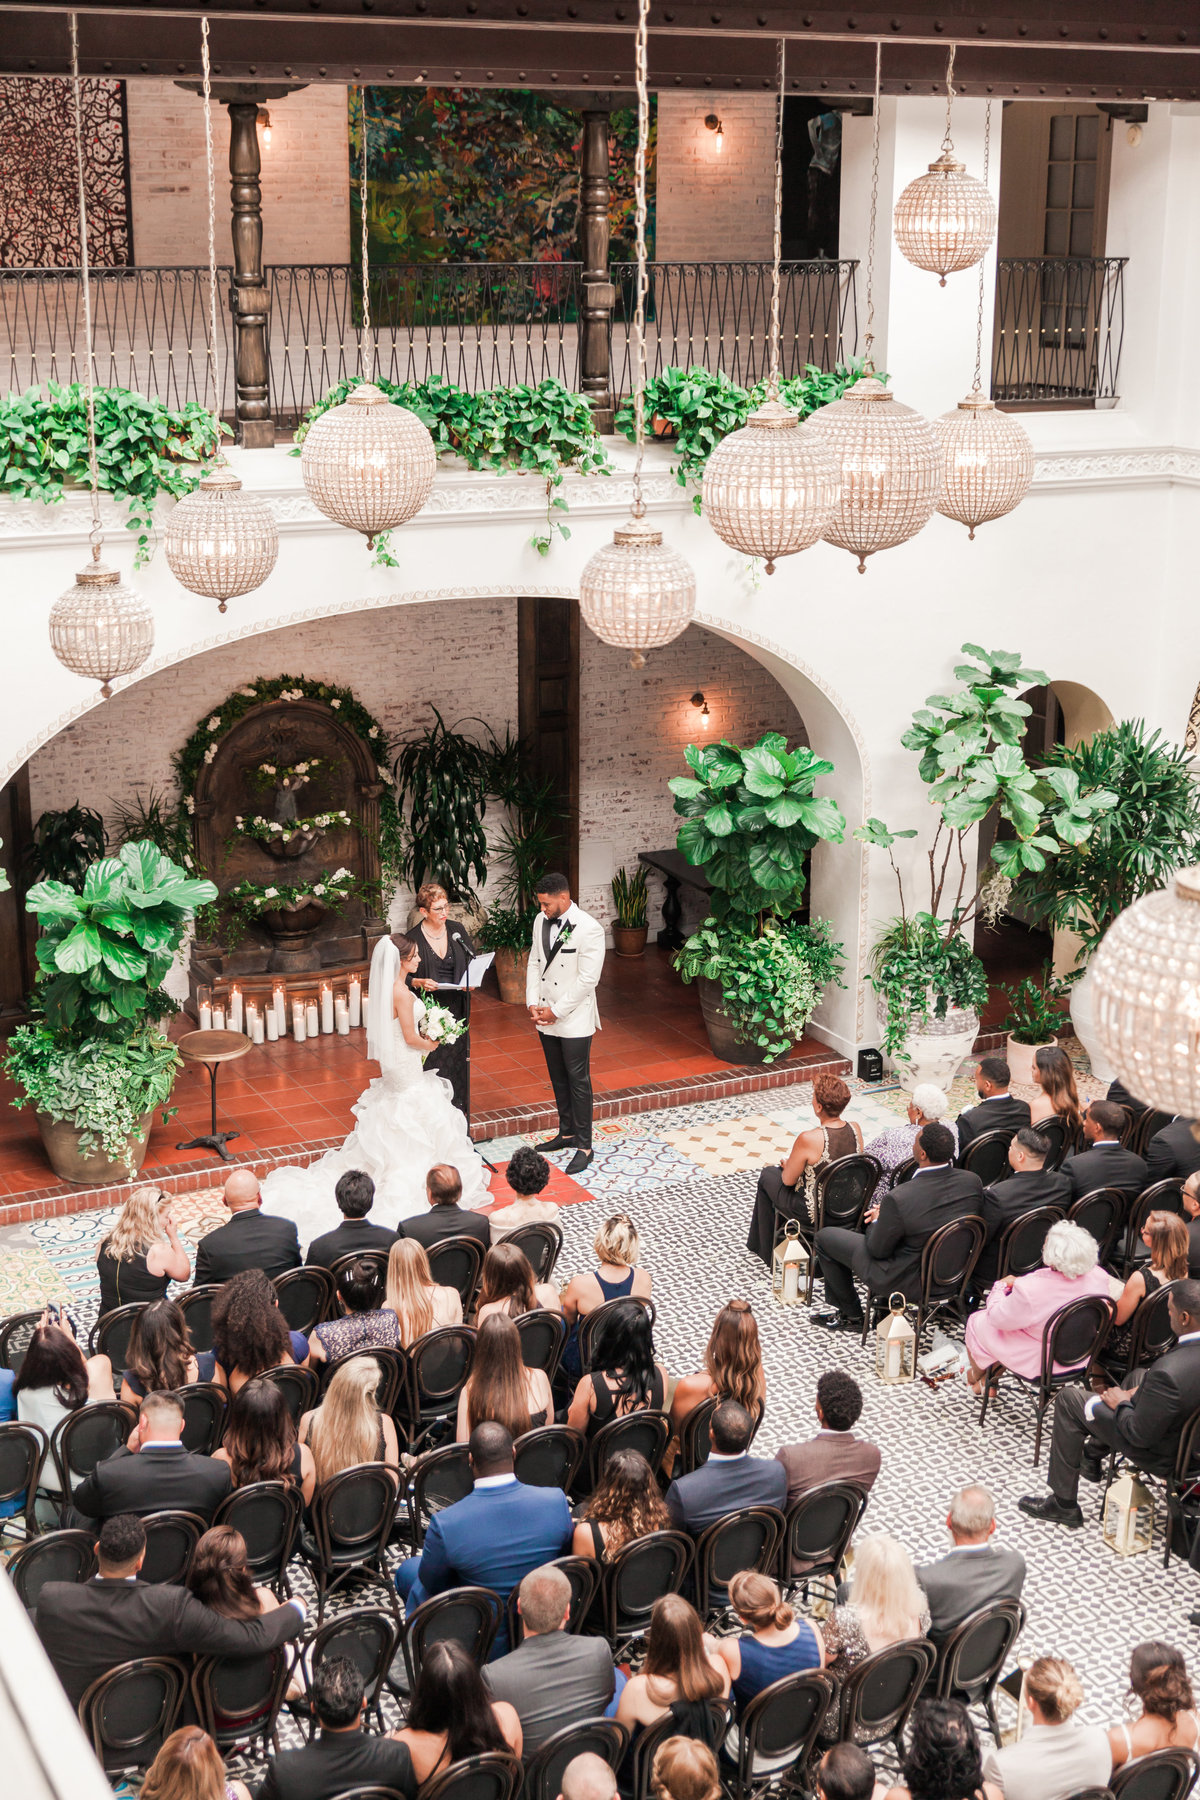 Ebell_Los_Angeles_Malcolm_Smith_NFL_Navy_Brass_Wedding_Valorie_Darling_Photography - 75 of 122